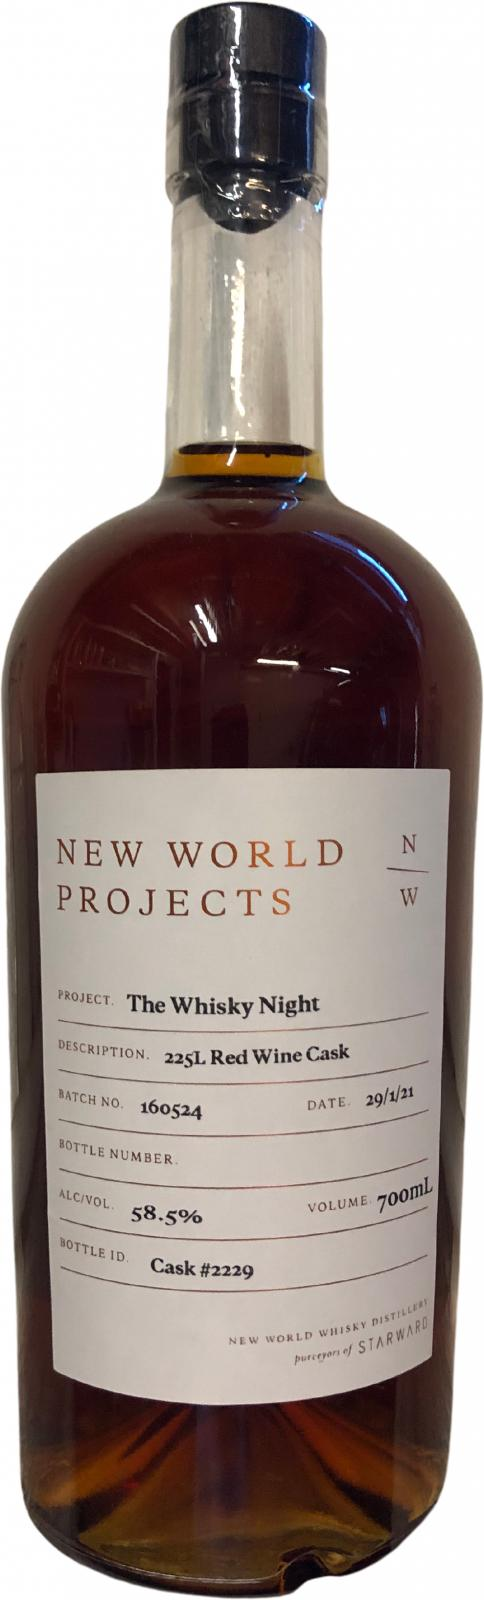 New World Projects The Whisky Night Red Wine Cask